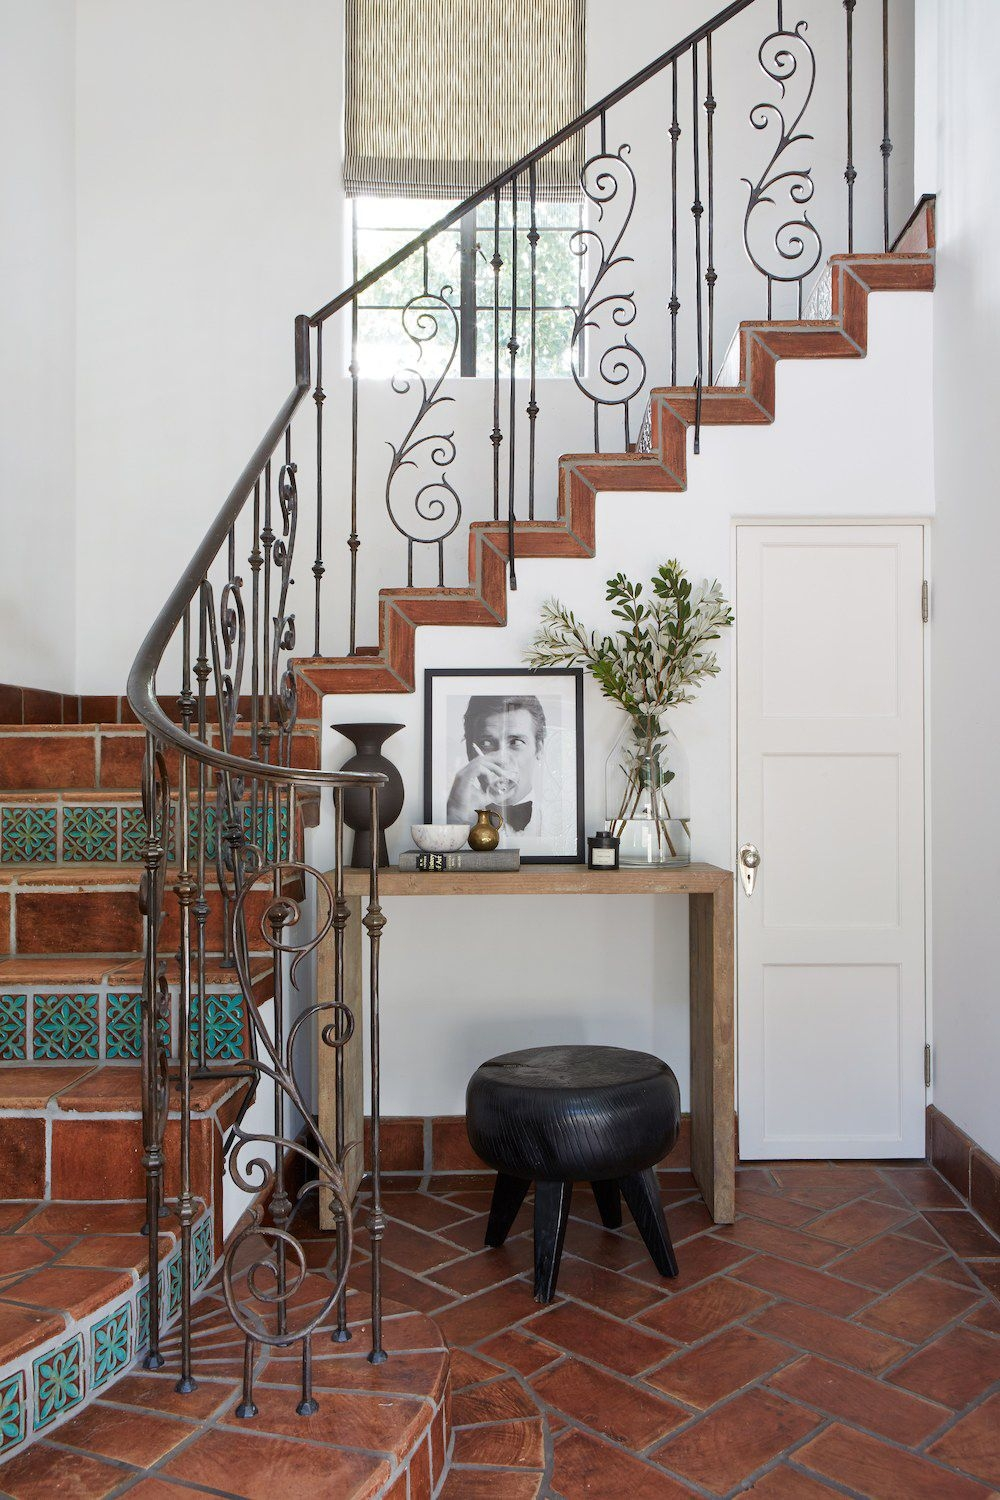 25 Unique Stair Designs Beautiful Stair Ideas For Your House | Duplex Staircase Railing Designs | Indoor | Wooden | Grill | Two Story House Stair | Floor To Ceiling